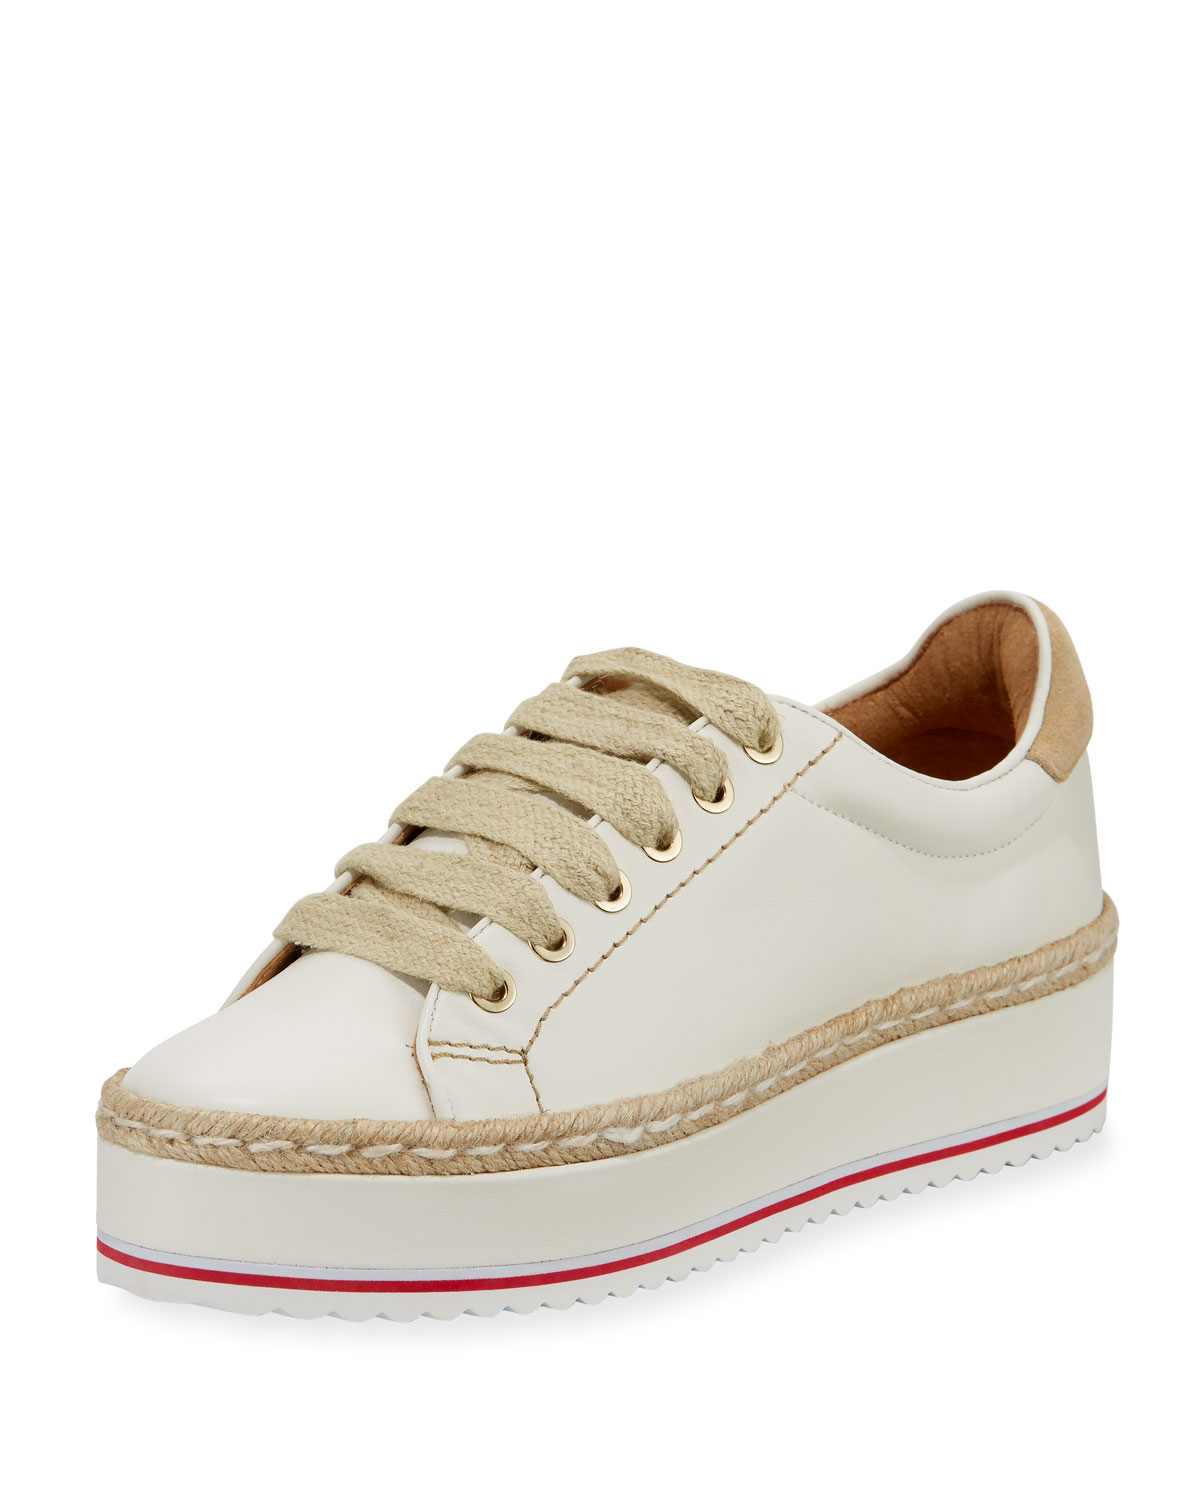 3123c5ab7627 Joie Dabnis Leather Platform Low-Top Sneaker